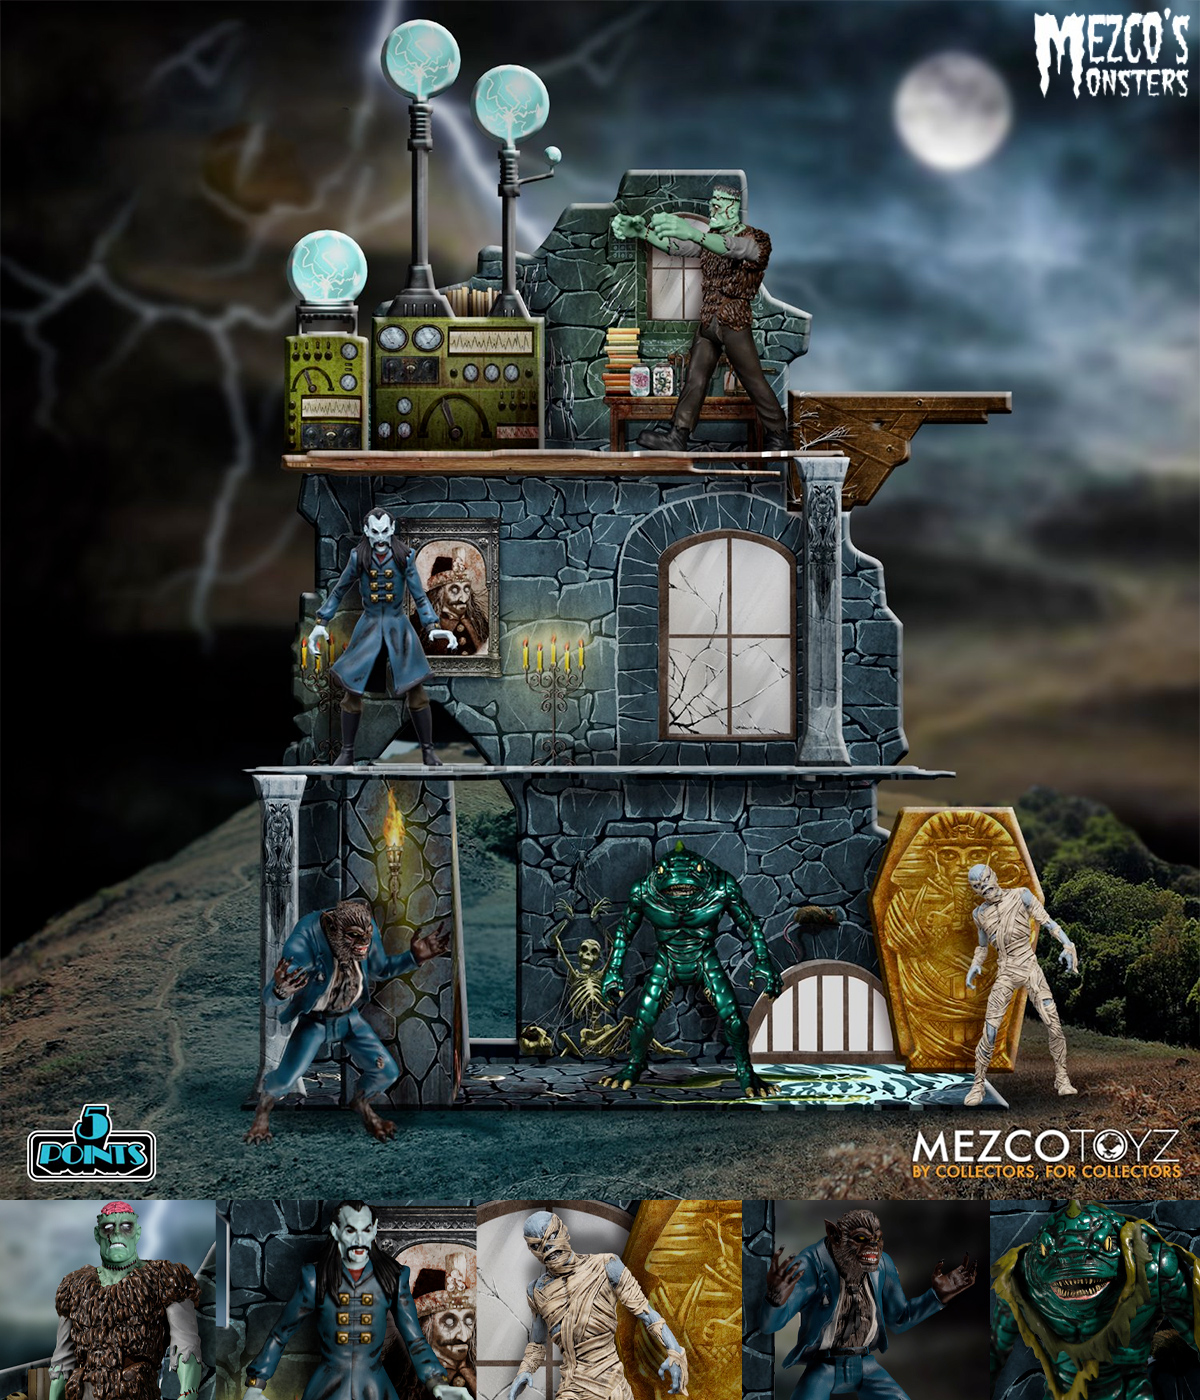 Mezco's Monsters: Tower of Fear Deluxe Boxed Set